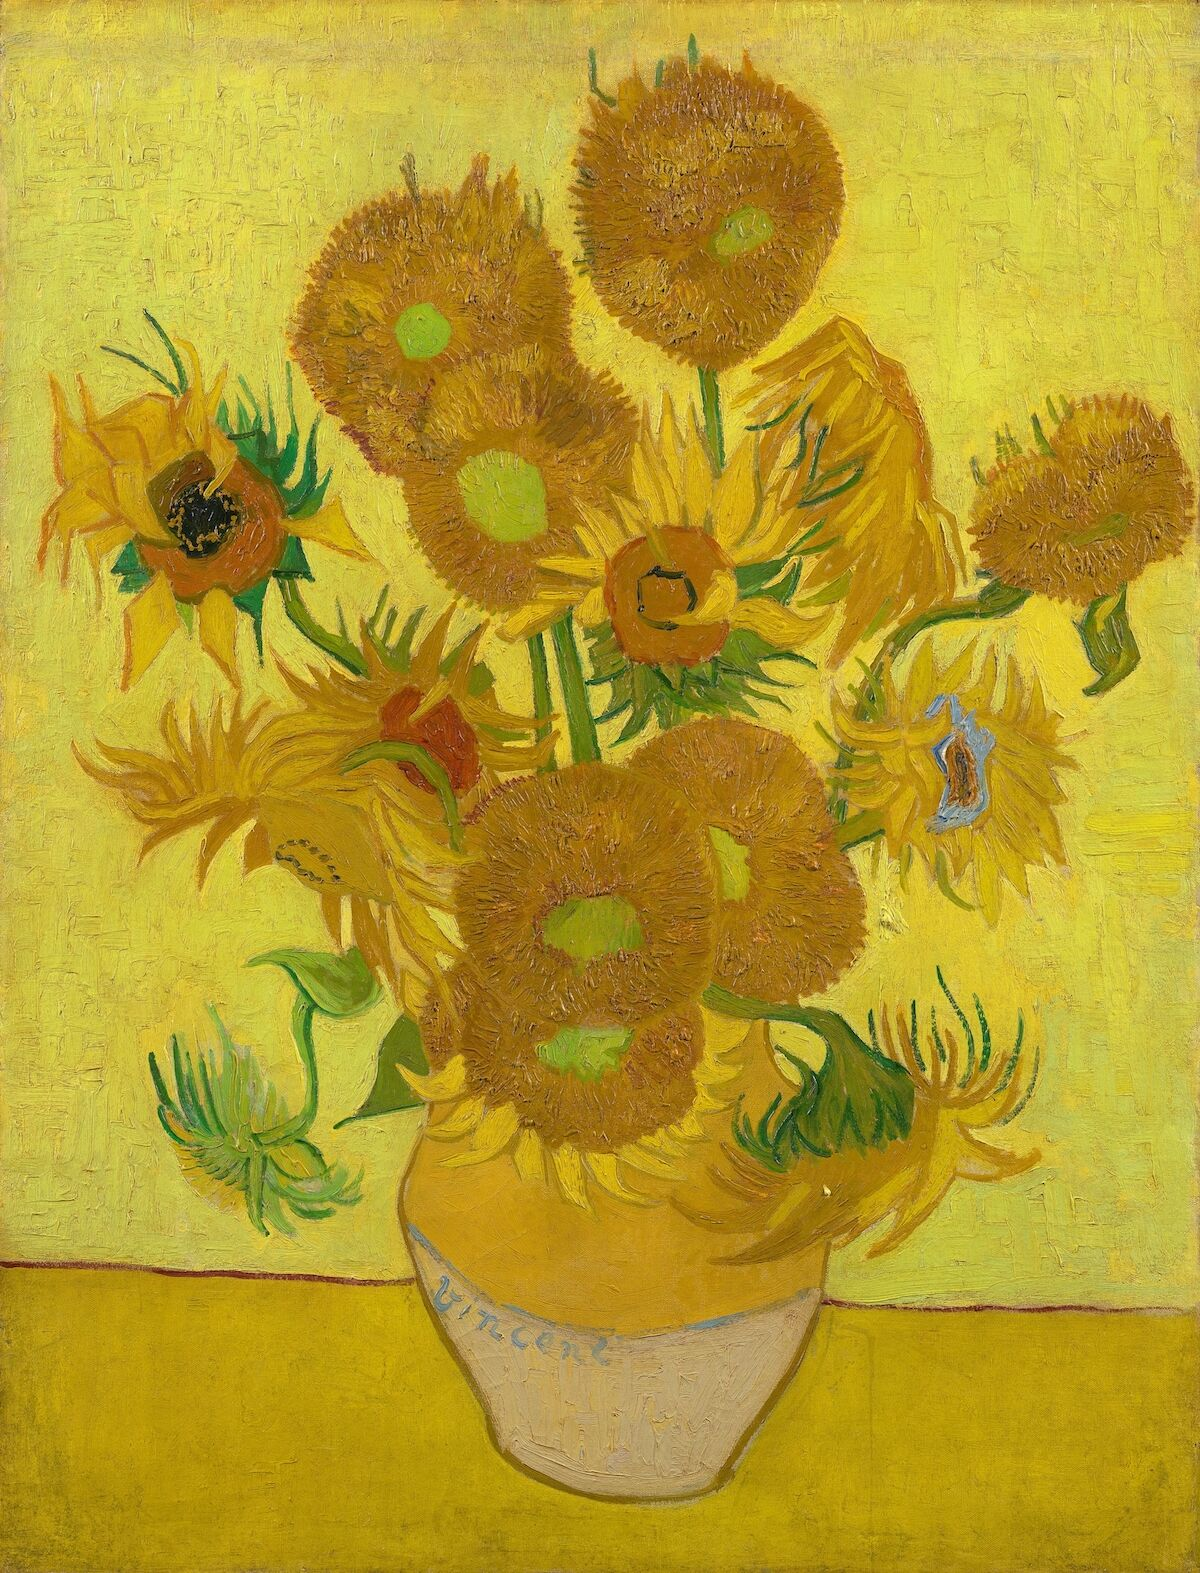 Vincent van Gogh, Sunflowers, 1889. Courtesy Van Gogh Museum, Amsterdam, via Wikimedia Commons.